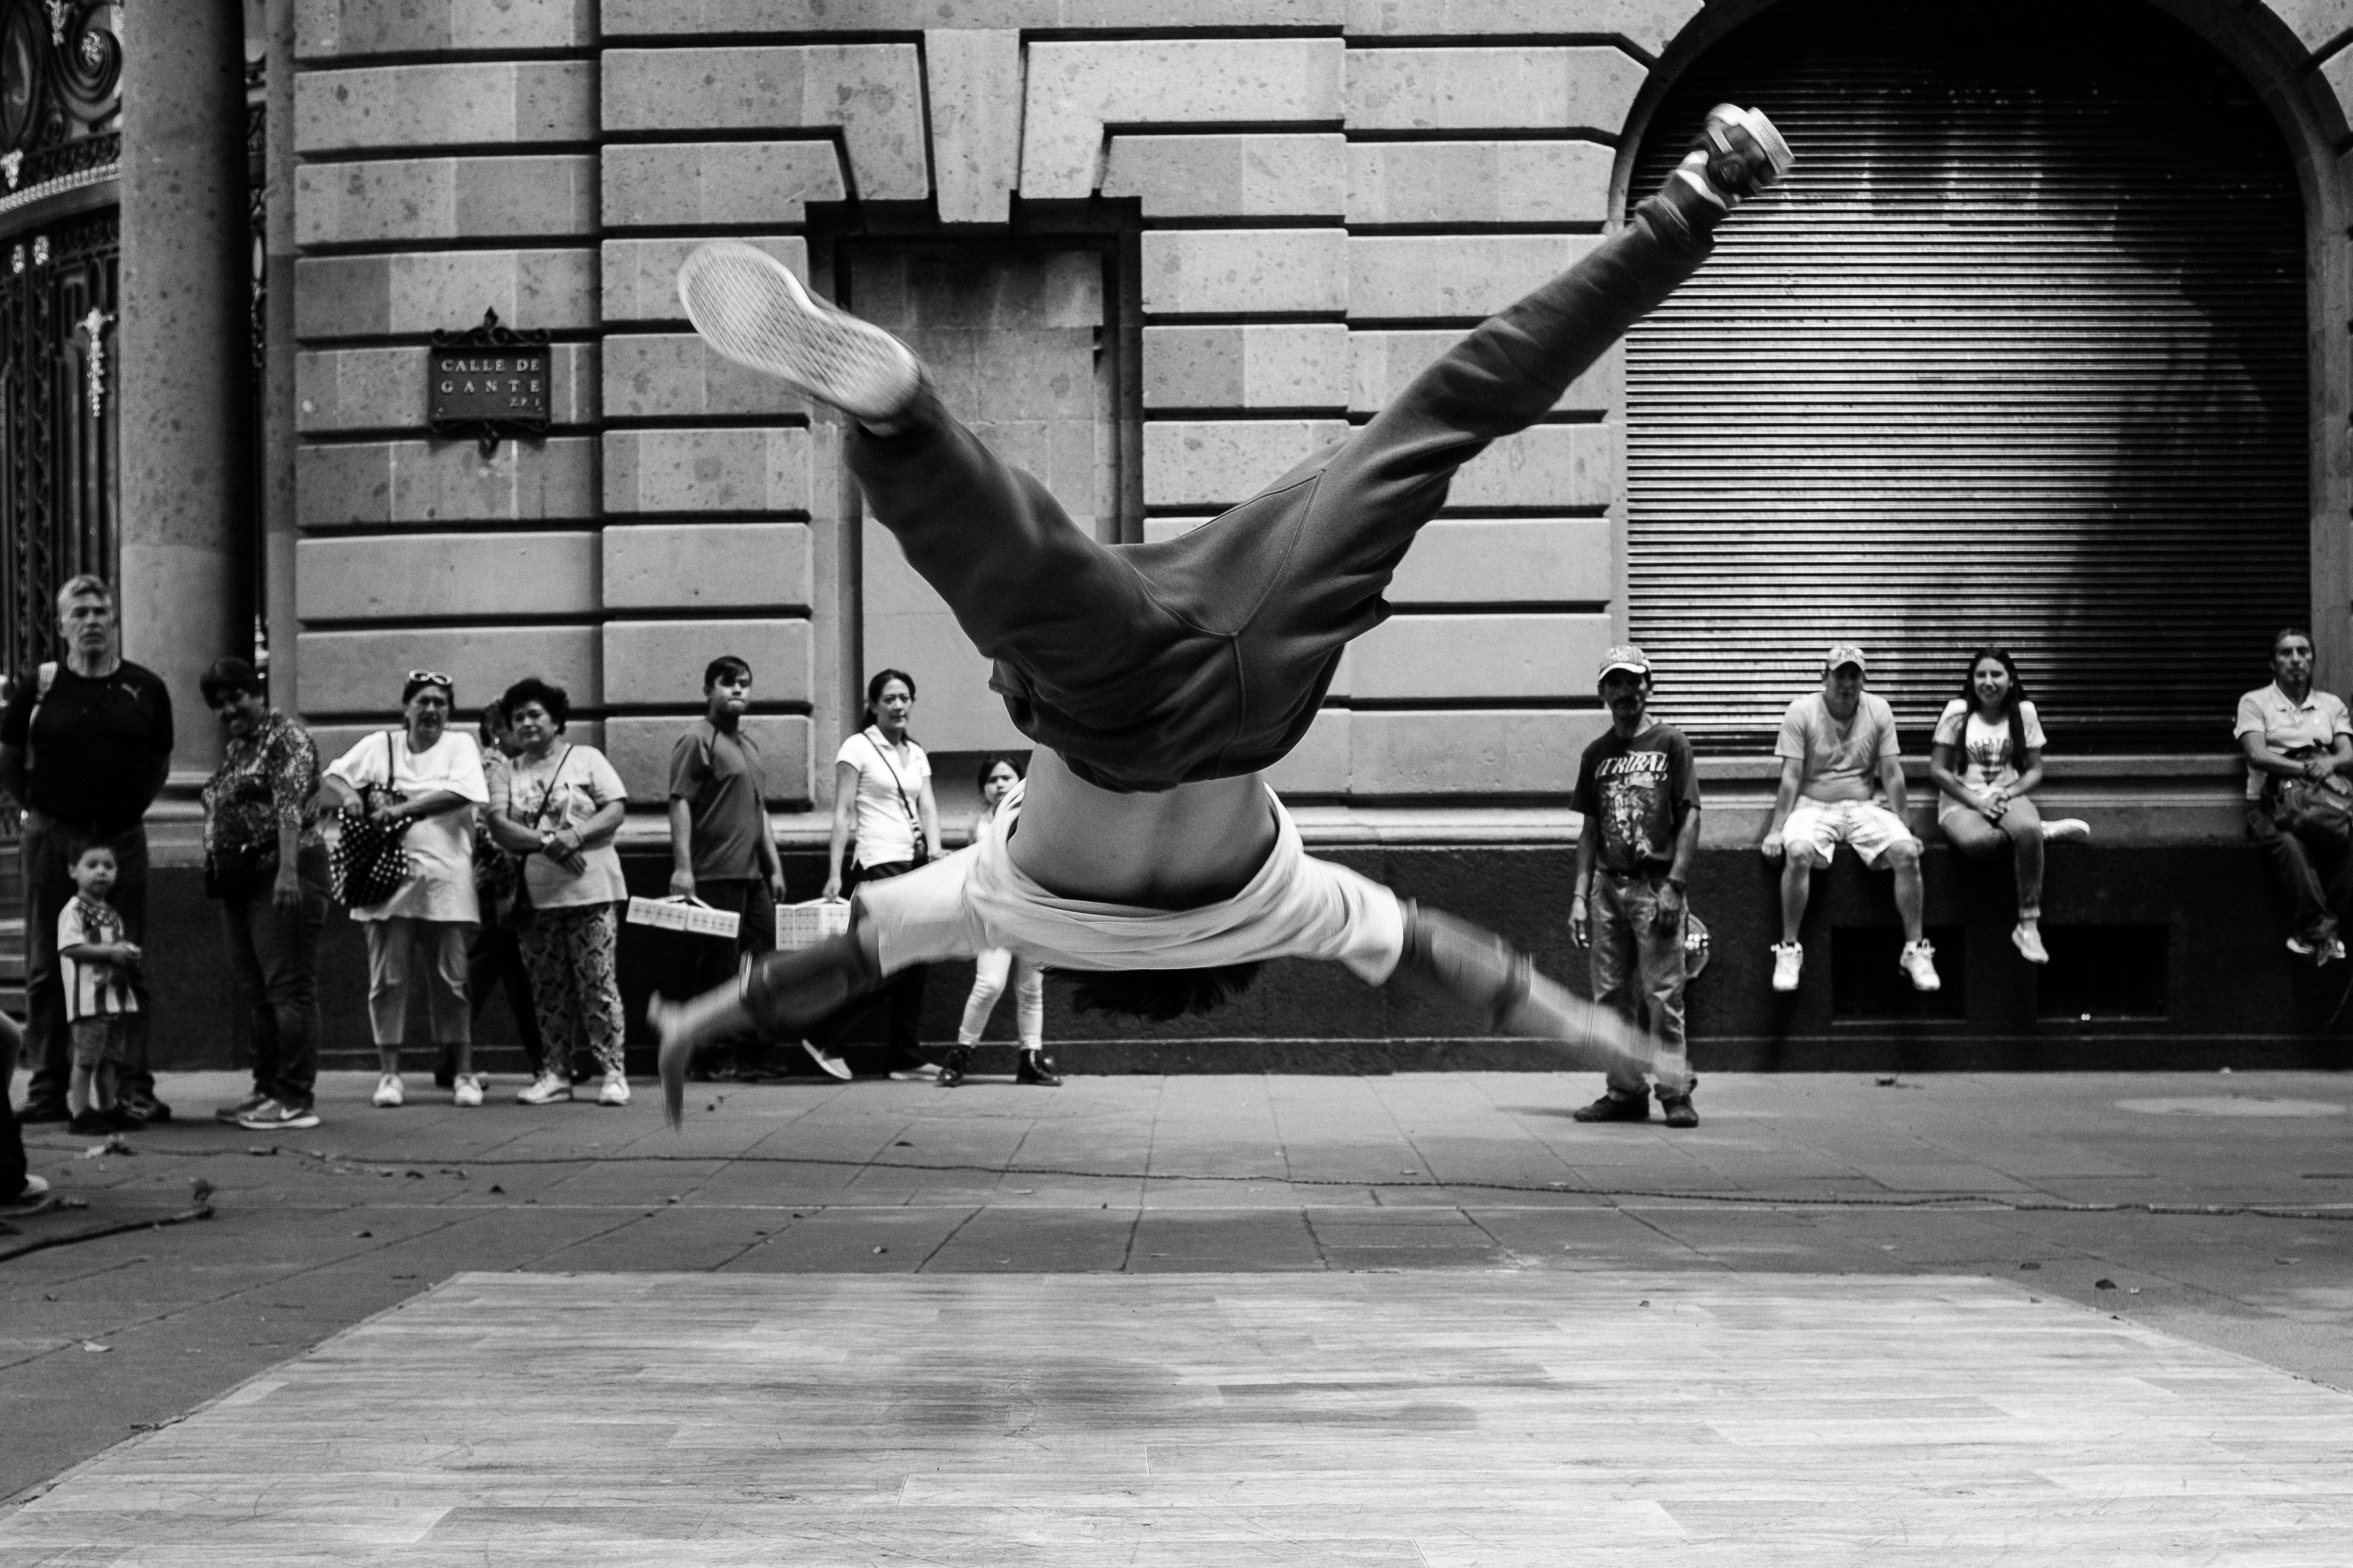 500  Street Photography Pictures  HQ    Download Free Images on Unsplash jumping man in grayscale photography